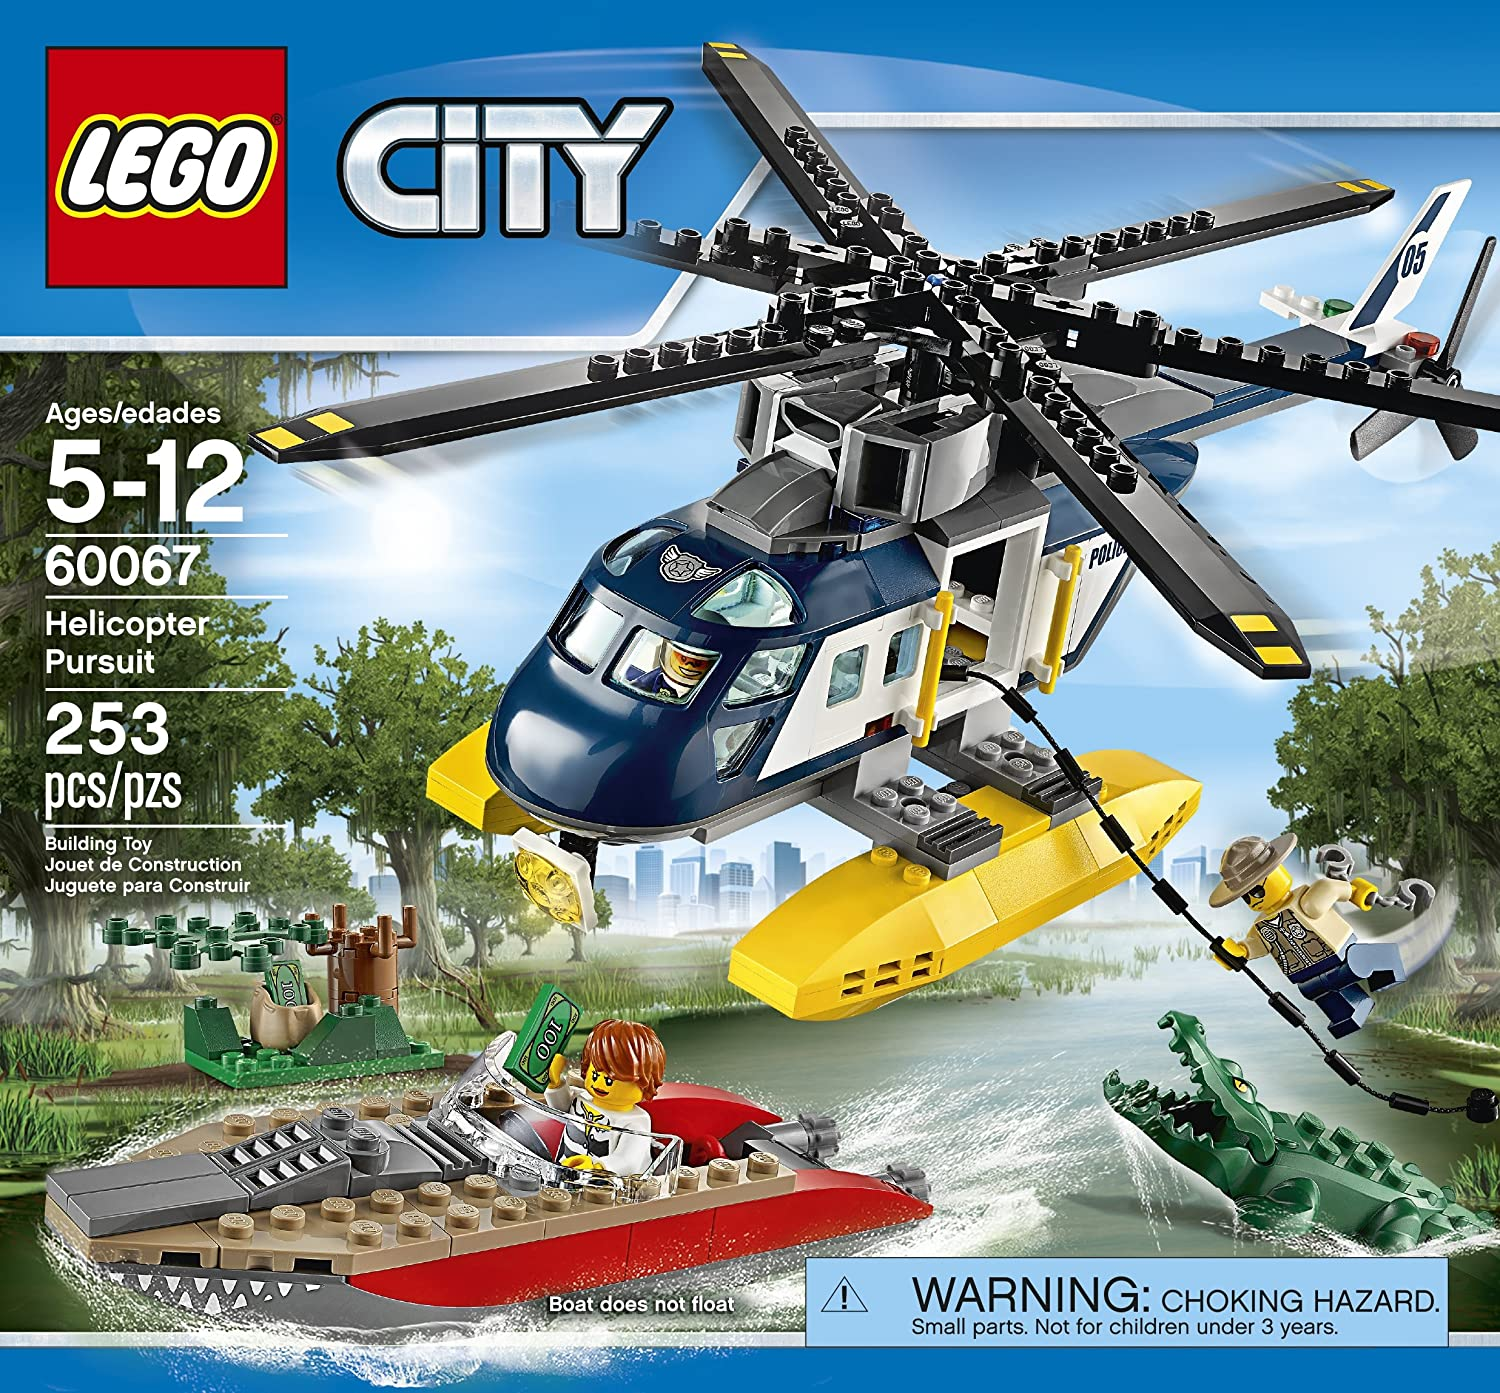 amazon com lego city police helicopter pursuit discontinued by